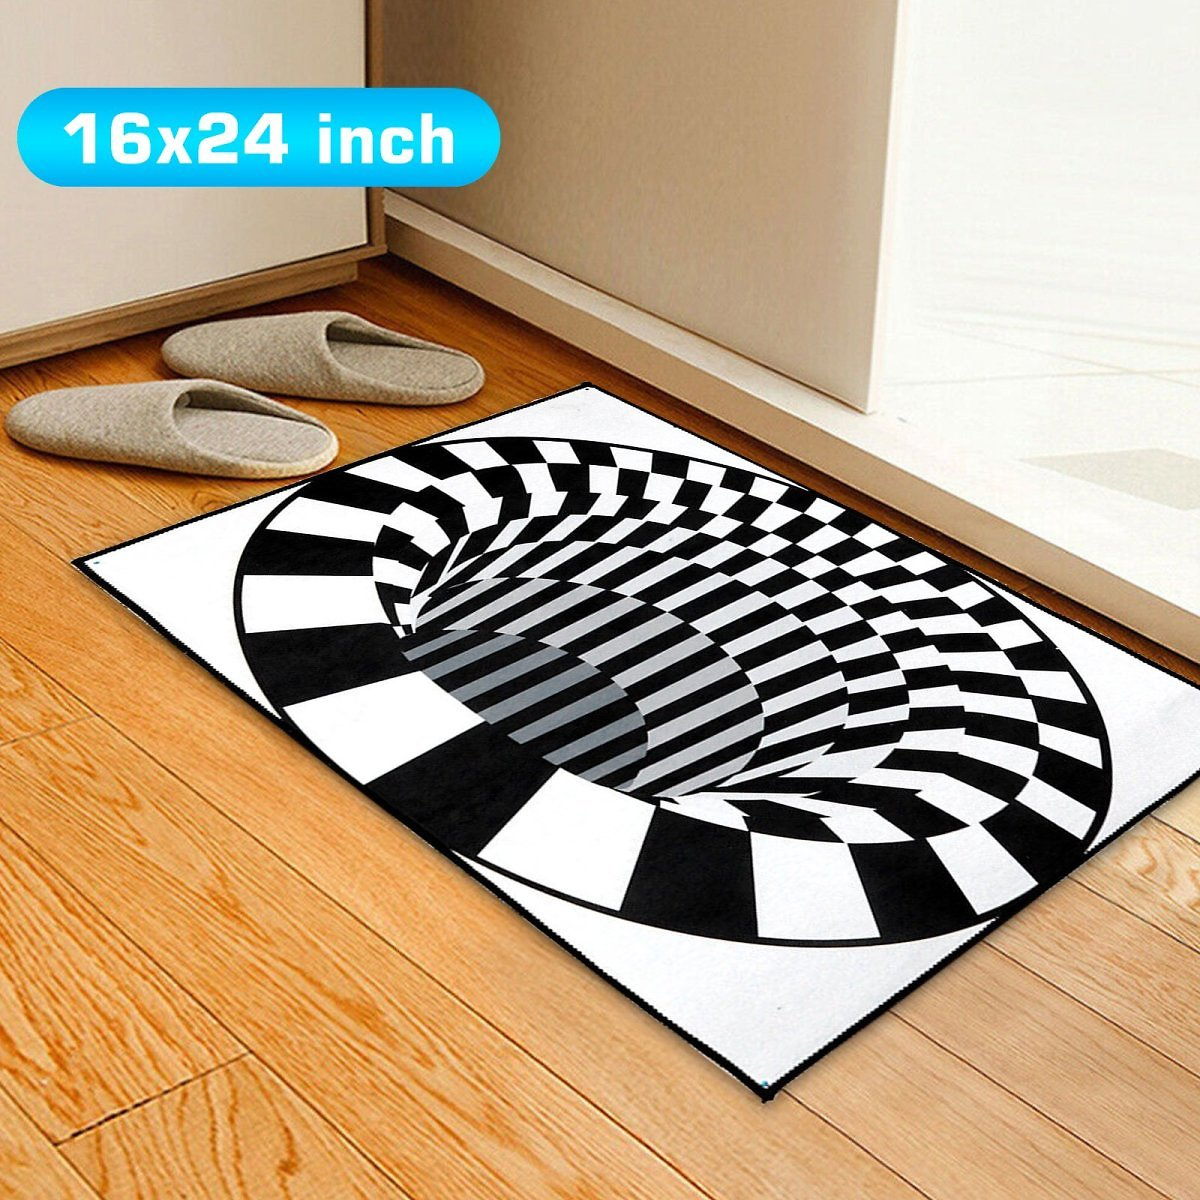 TSV-3D-Bottomless-Hole-Carpet-Mat-Rug-40x60cm-15-7x23-6in-Anti-Skid-Stain-resistant-Home-Bedroom-Offi